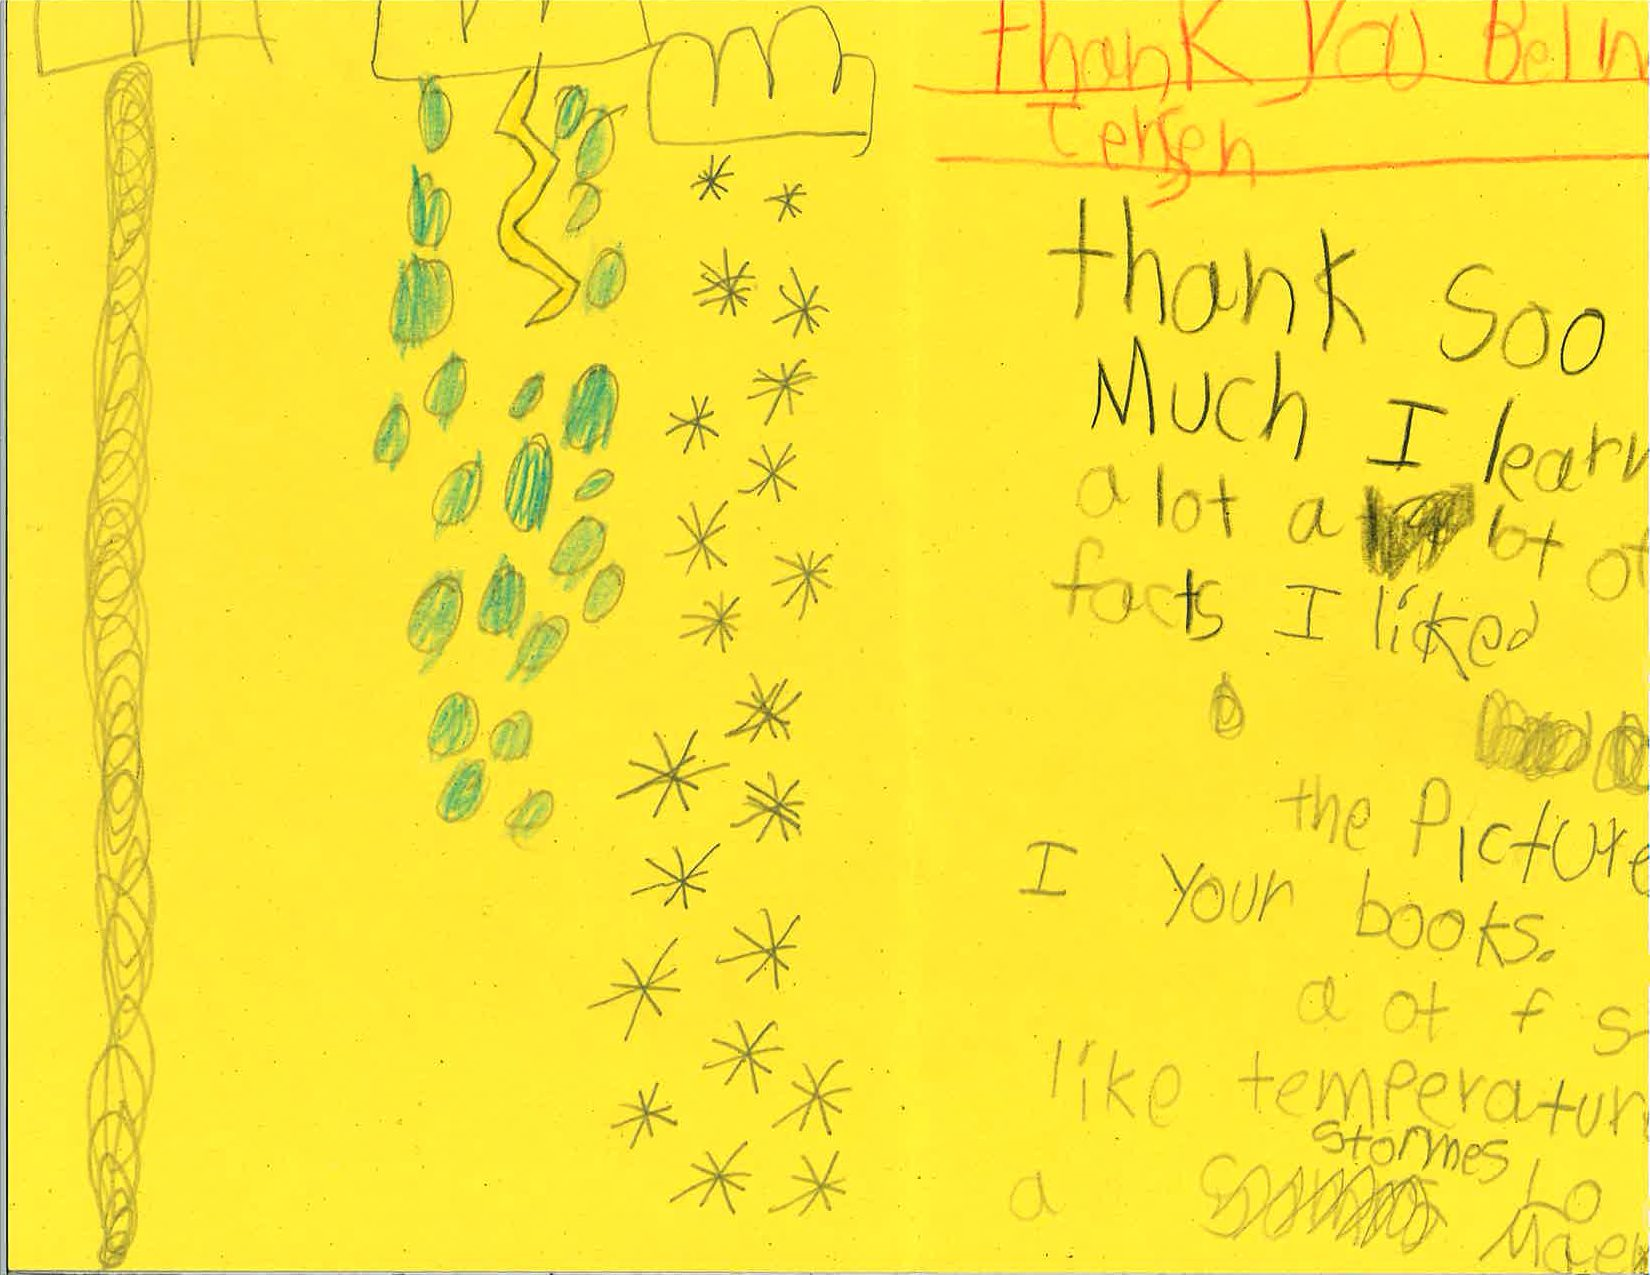 Child's Thank you card